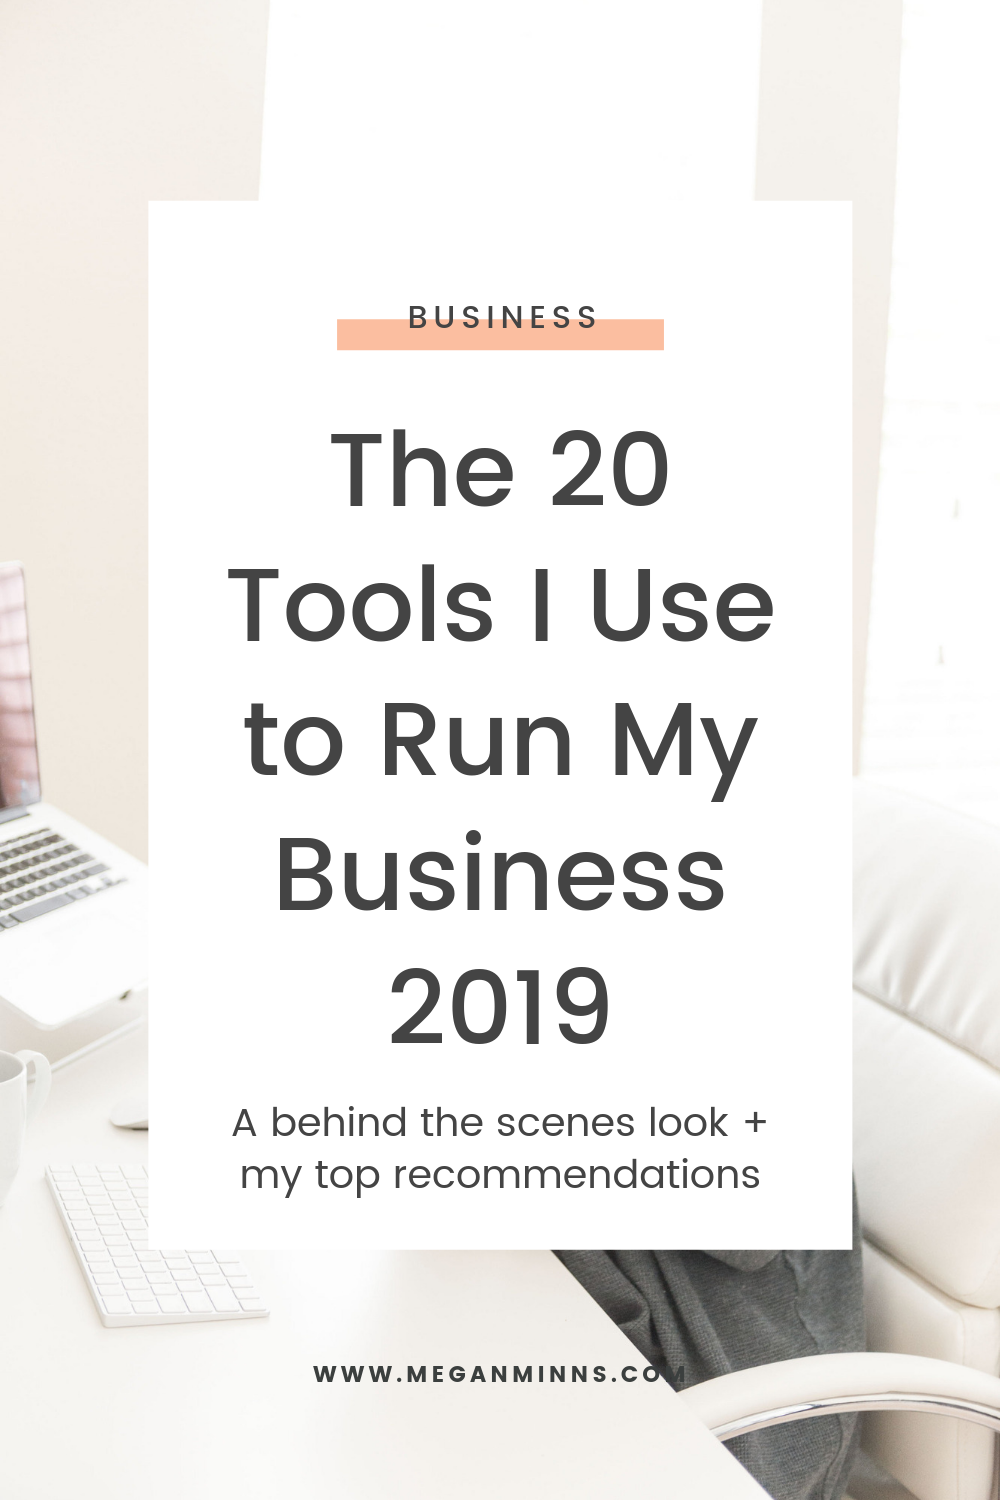 I'm a systems geek at heart, so I wanted to give you an updated rundown of the best business tools I'm currently using and share a little bit about them.  Learn about the 20+ business tools I'm using in 2019. Some of them might surprise you!  READ THE FULL POST HERE:  https://meganminns.com/blog/tools-to-run-business-2019